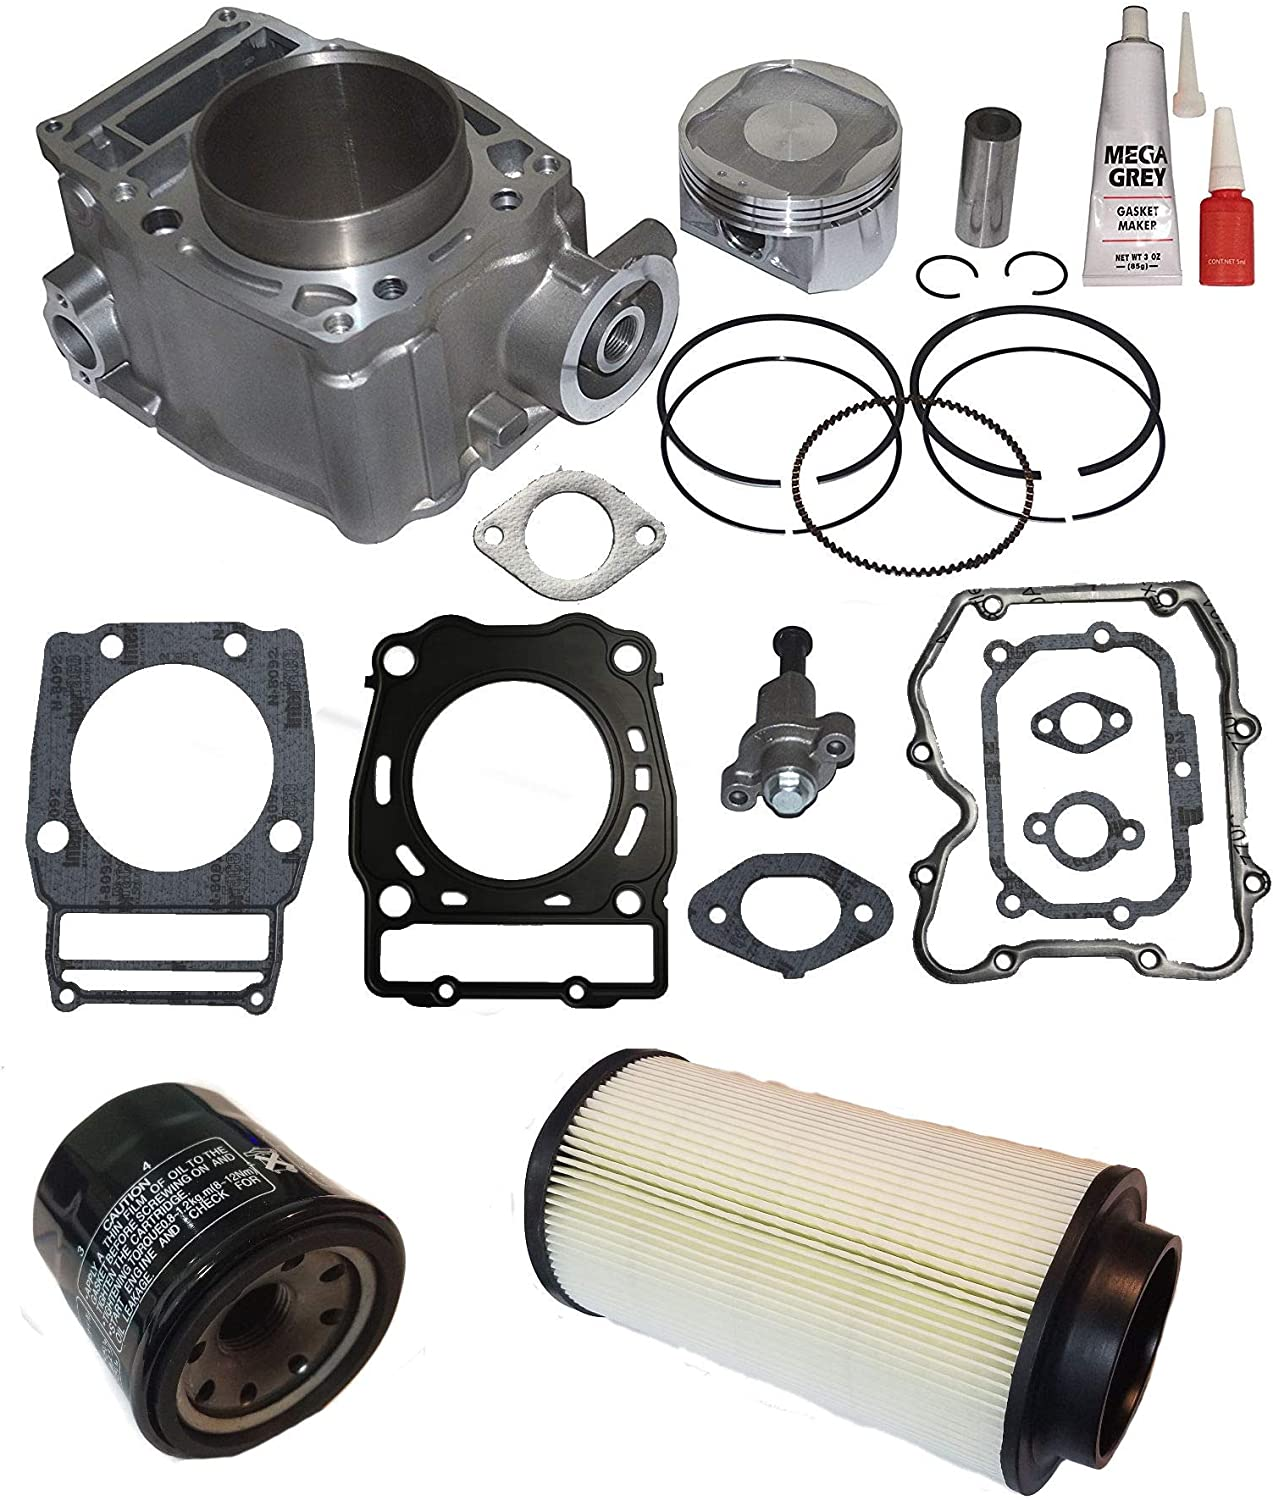 NEW POLARIS SPORTSMAN 500 4x4 HO CYLINDER PISTON GASKET KIT Fit Year 96-13